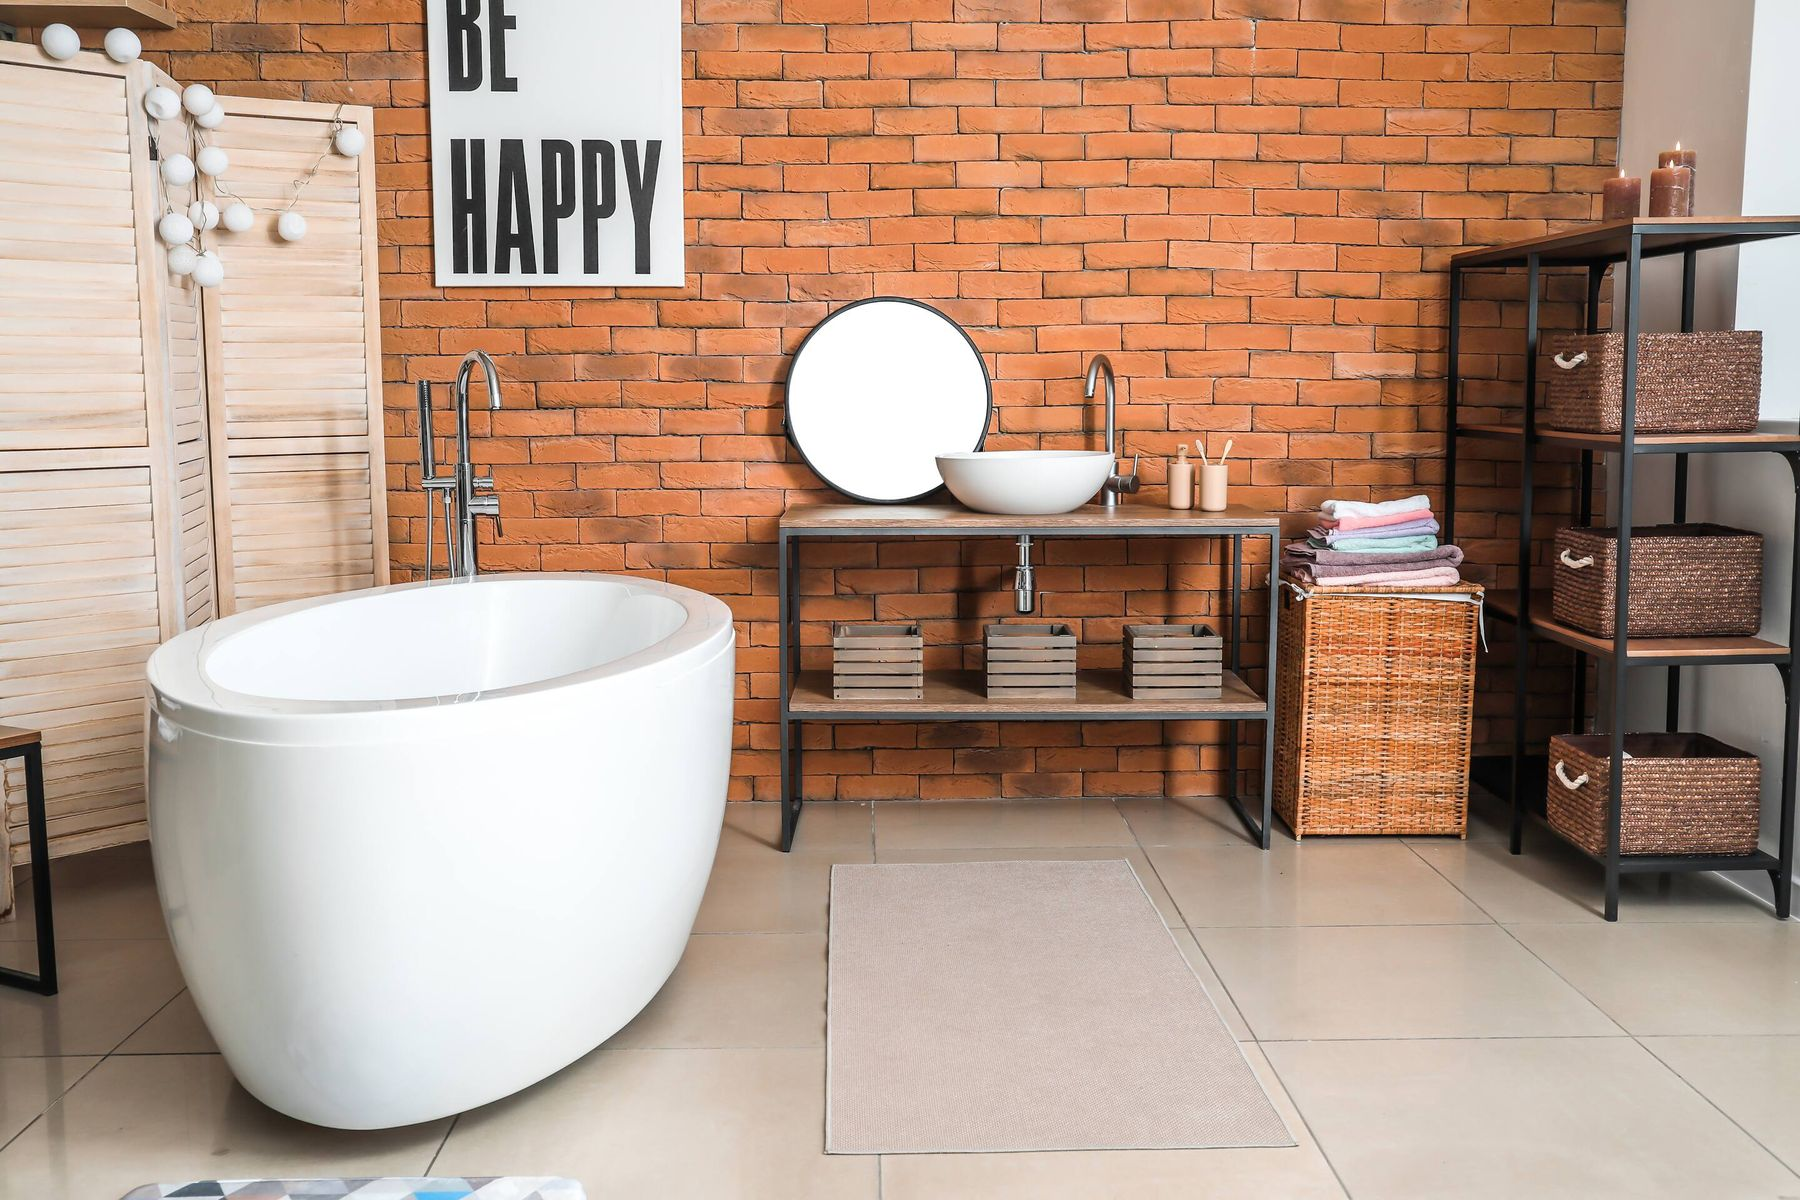 How to Clean Toilet  Accessories | Cleanipedia